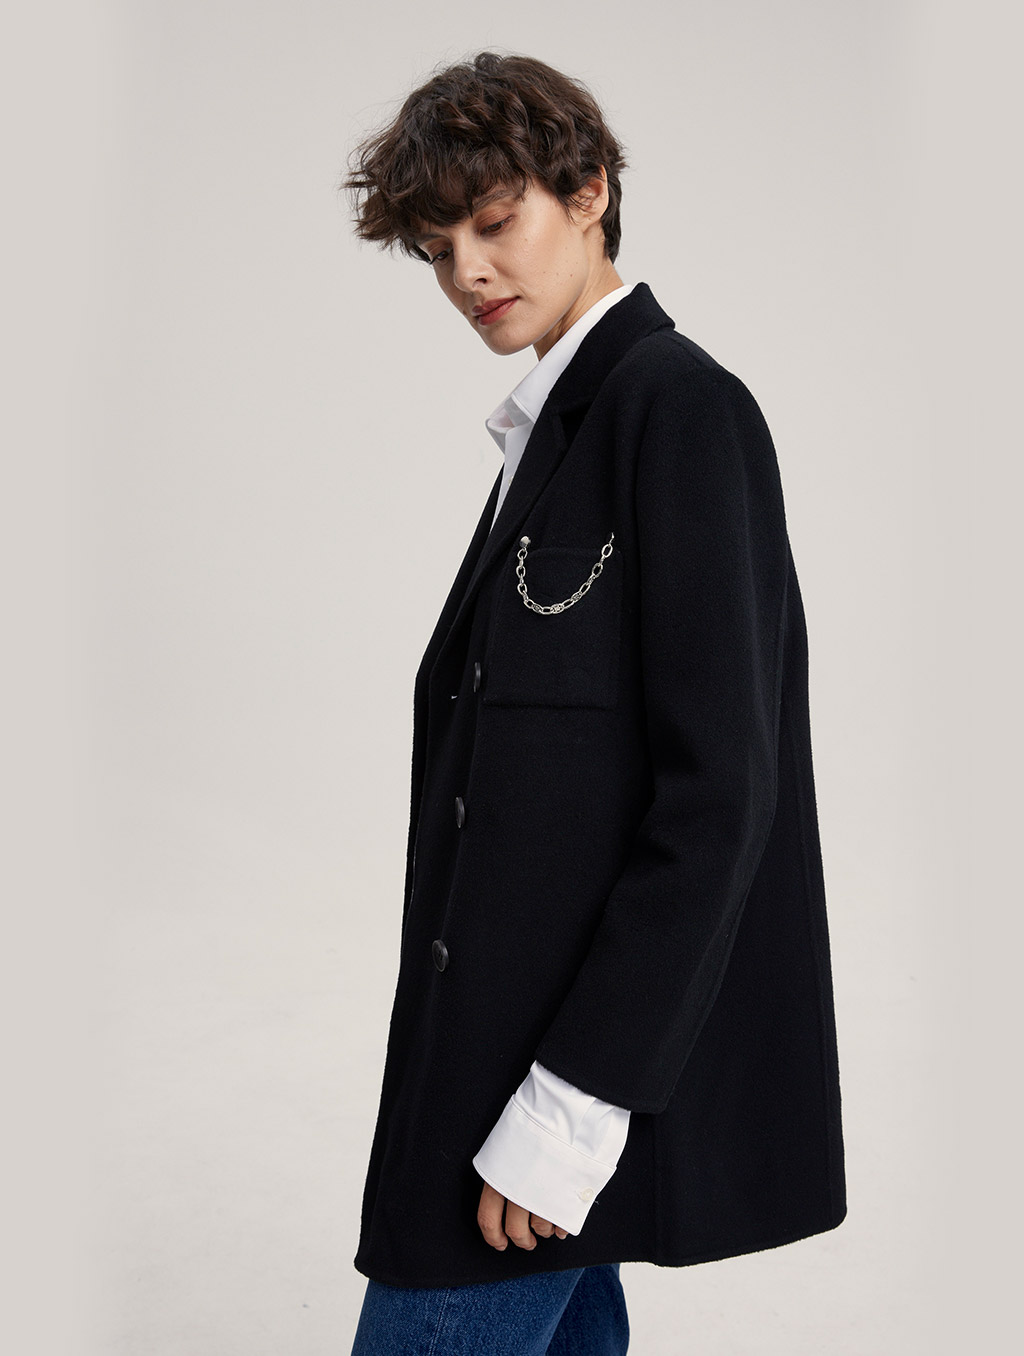 Waisted 100% Camel Hair Coat With Badge-side-black